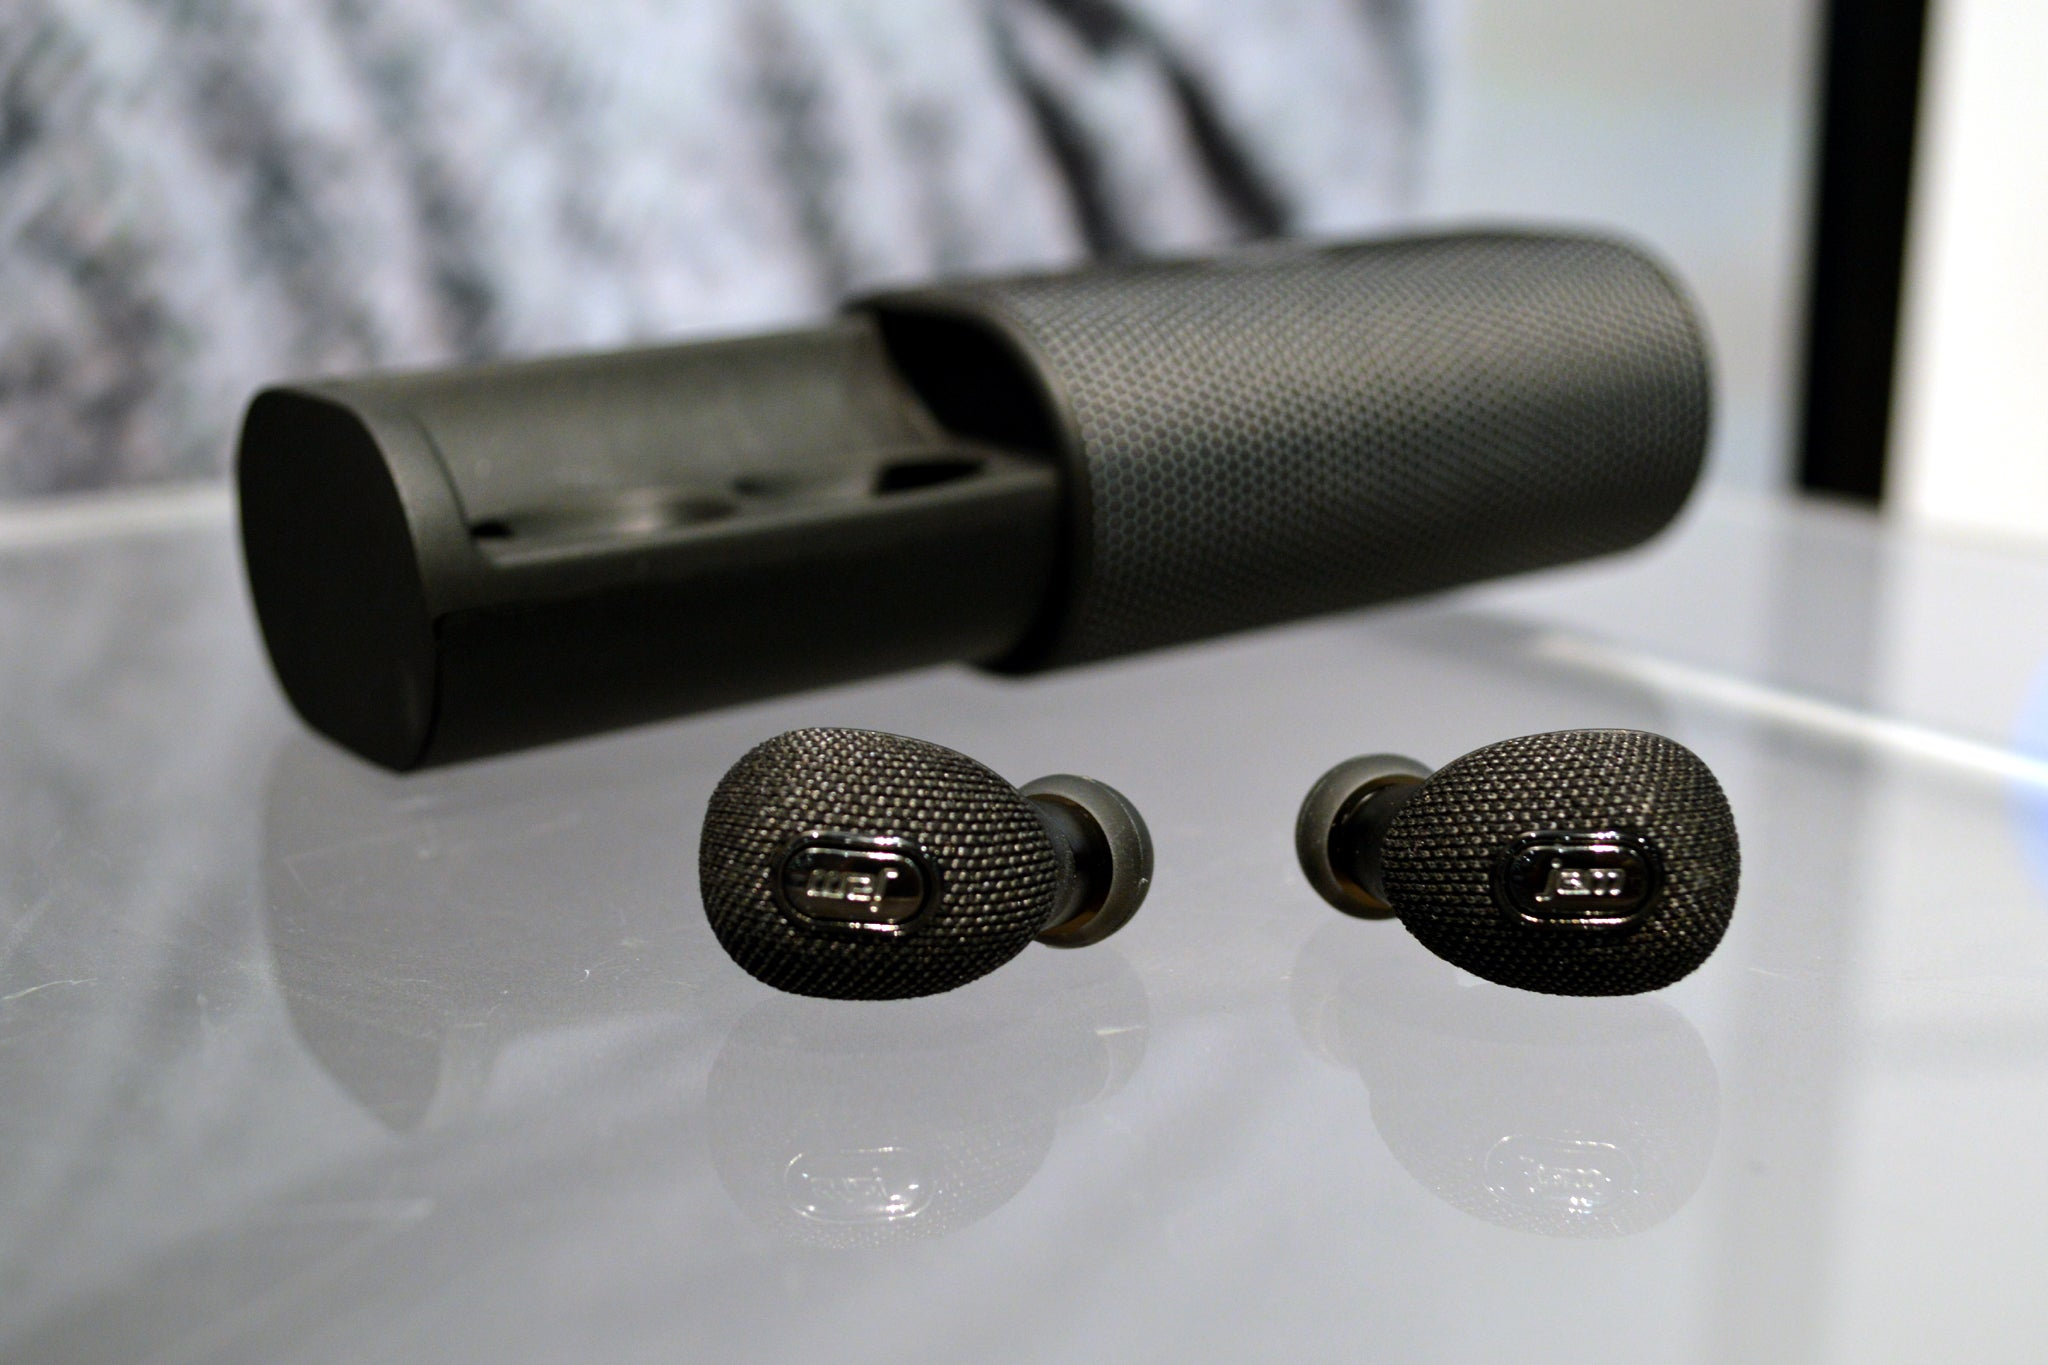 56eccabd21e 15 of the coolest wired and wireless earbuds we saw at CES | TechHive